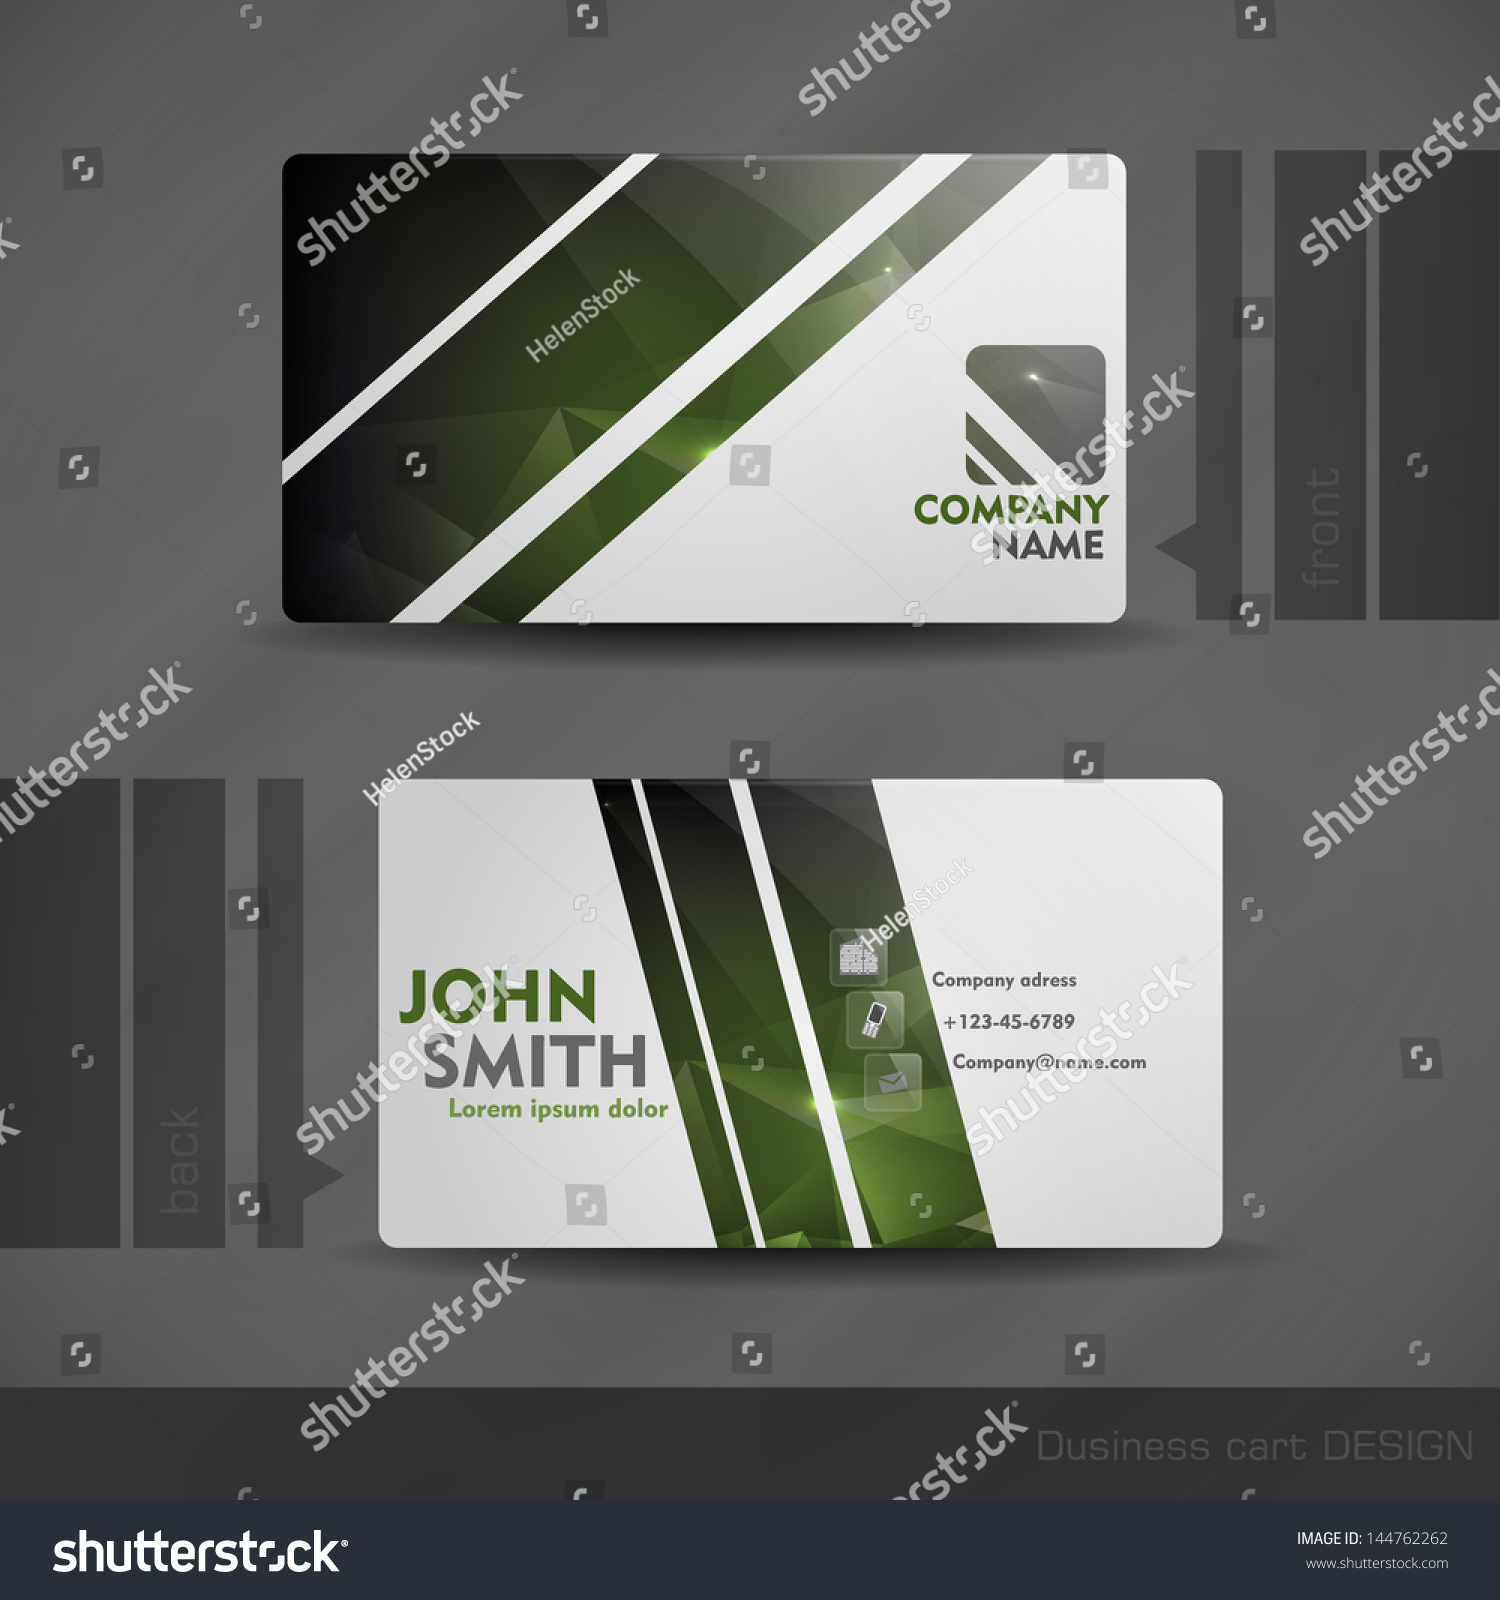 business card template eps 28 images business card template